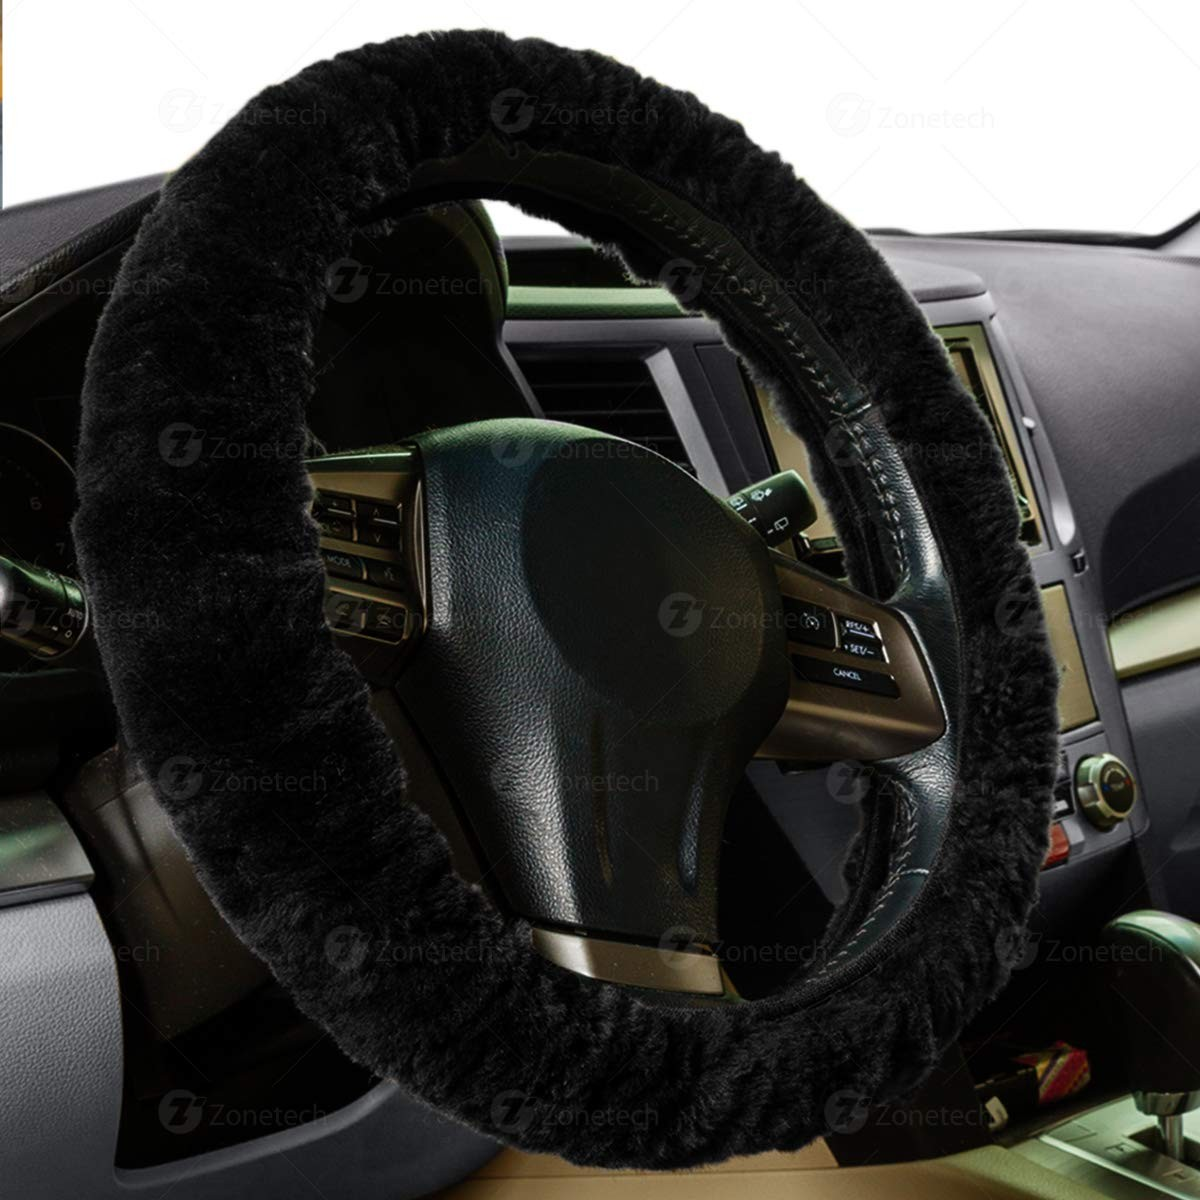 auto accessories headlight bulbs car gifts zone tech plush fauxzone tech plush faux sheepskin stretch on steering wheel cover black